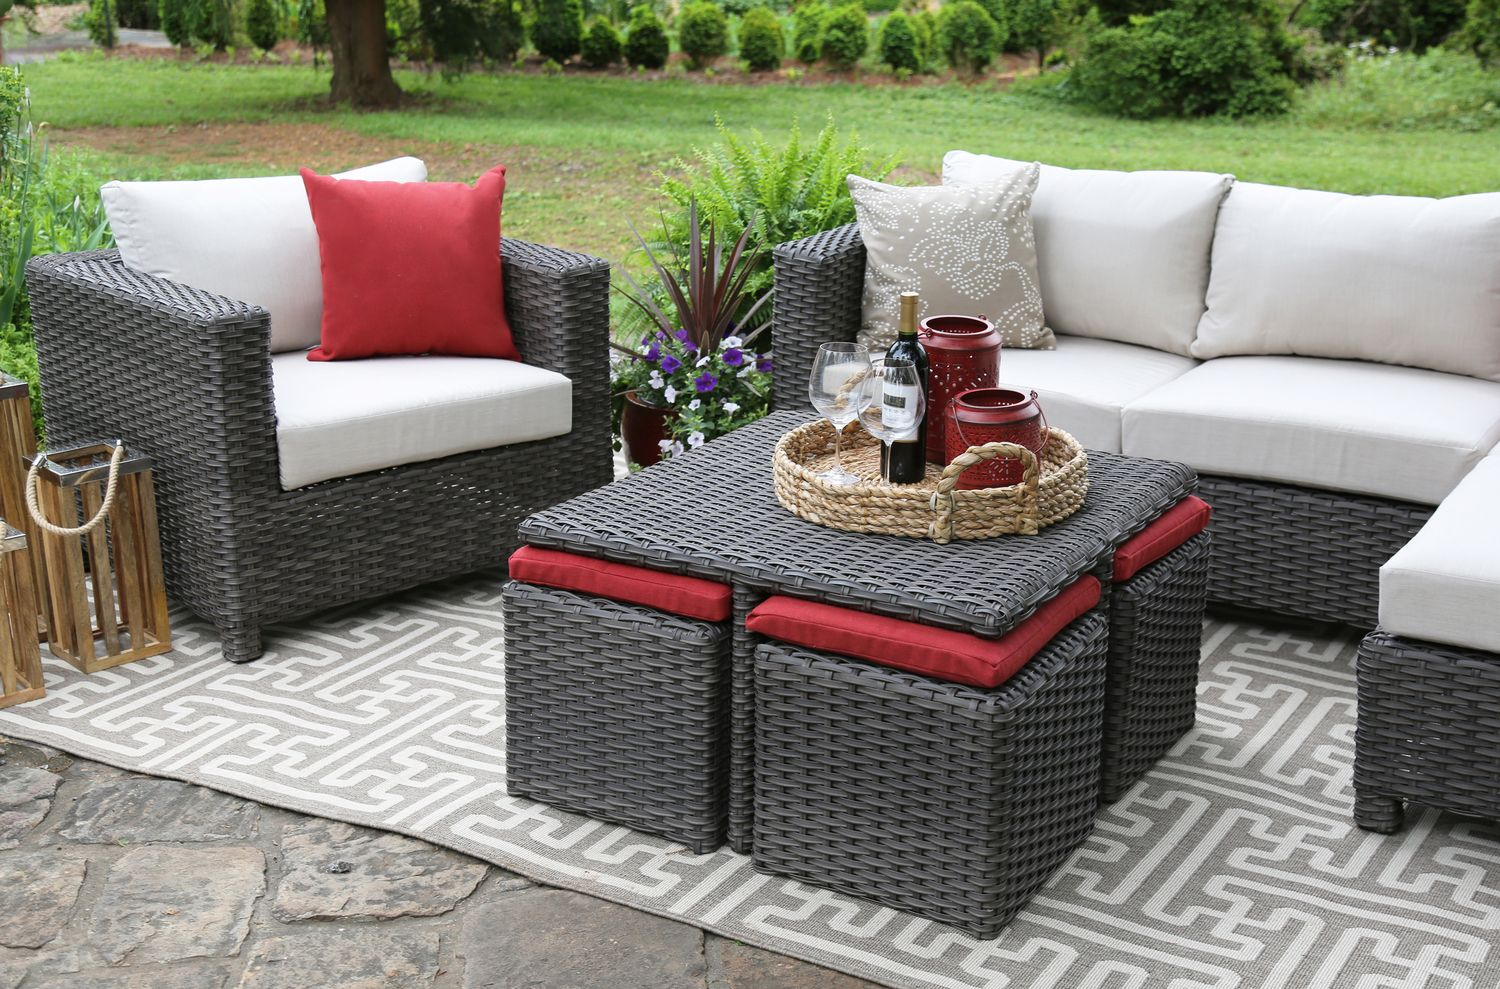 Delicieux Carson Deep Seating Set Ae Outdoor Not Your Grandma S Patio. Beautiful  Sunbrella Patio Furniture Residence Decorating Suggestion  Furnituresunbrella ...